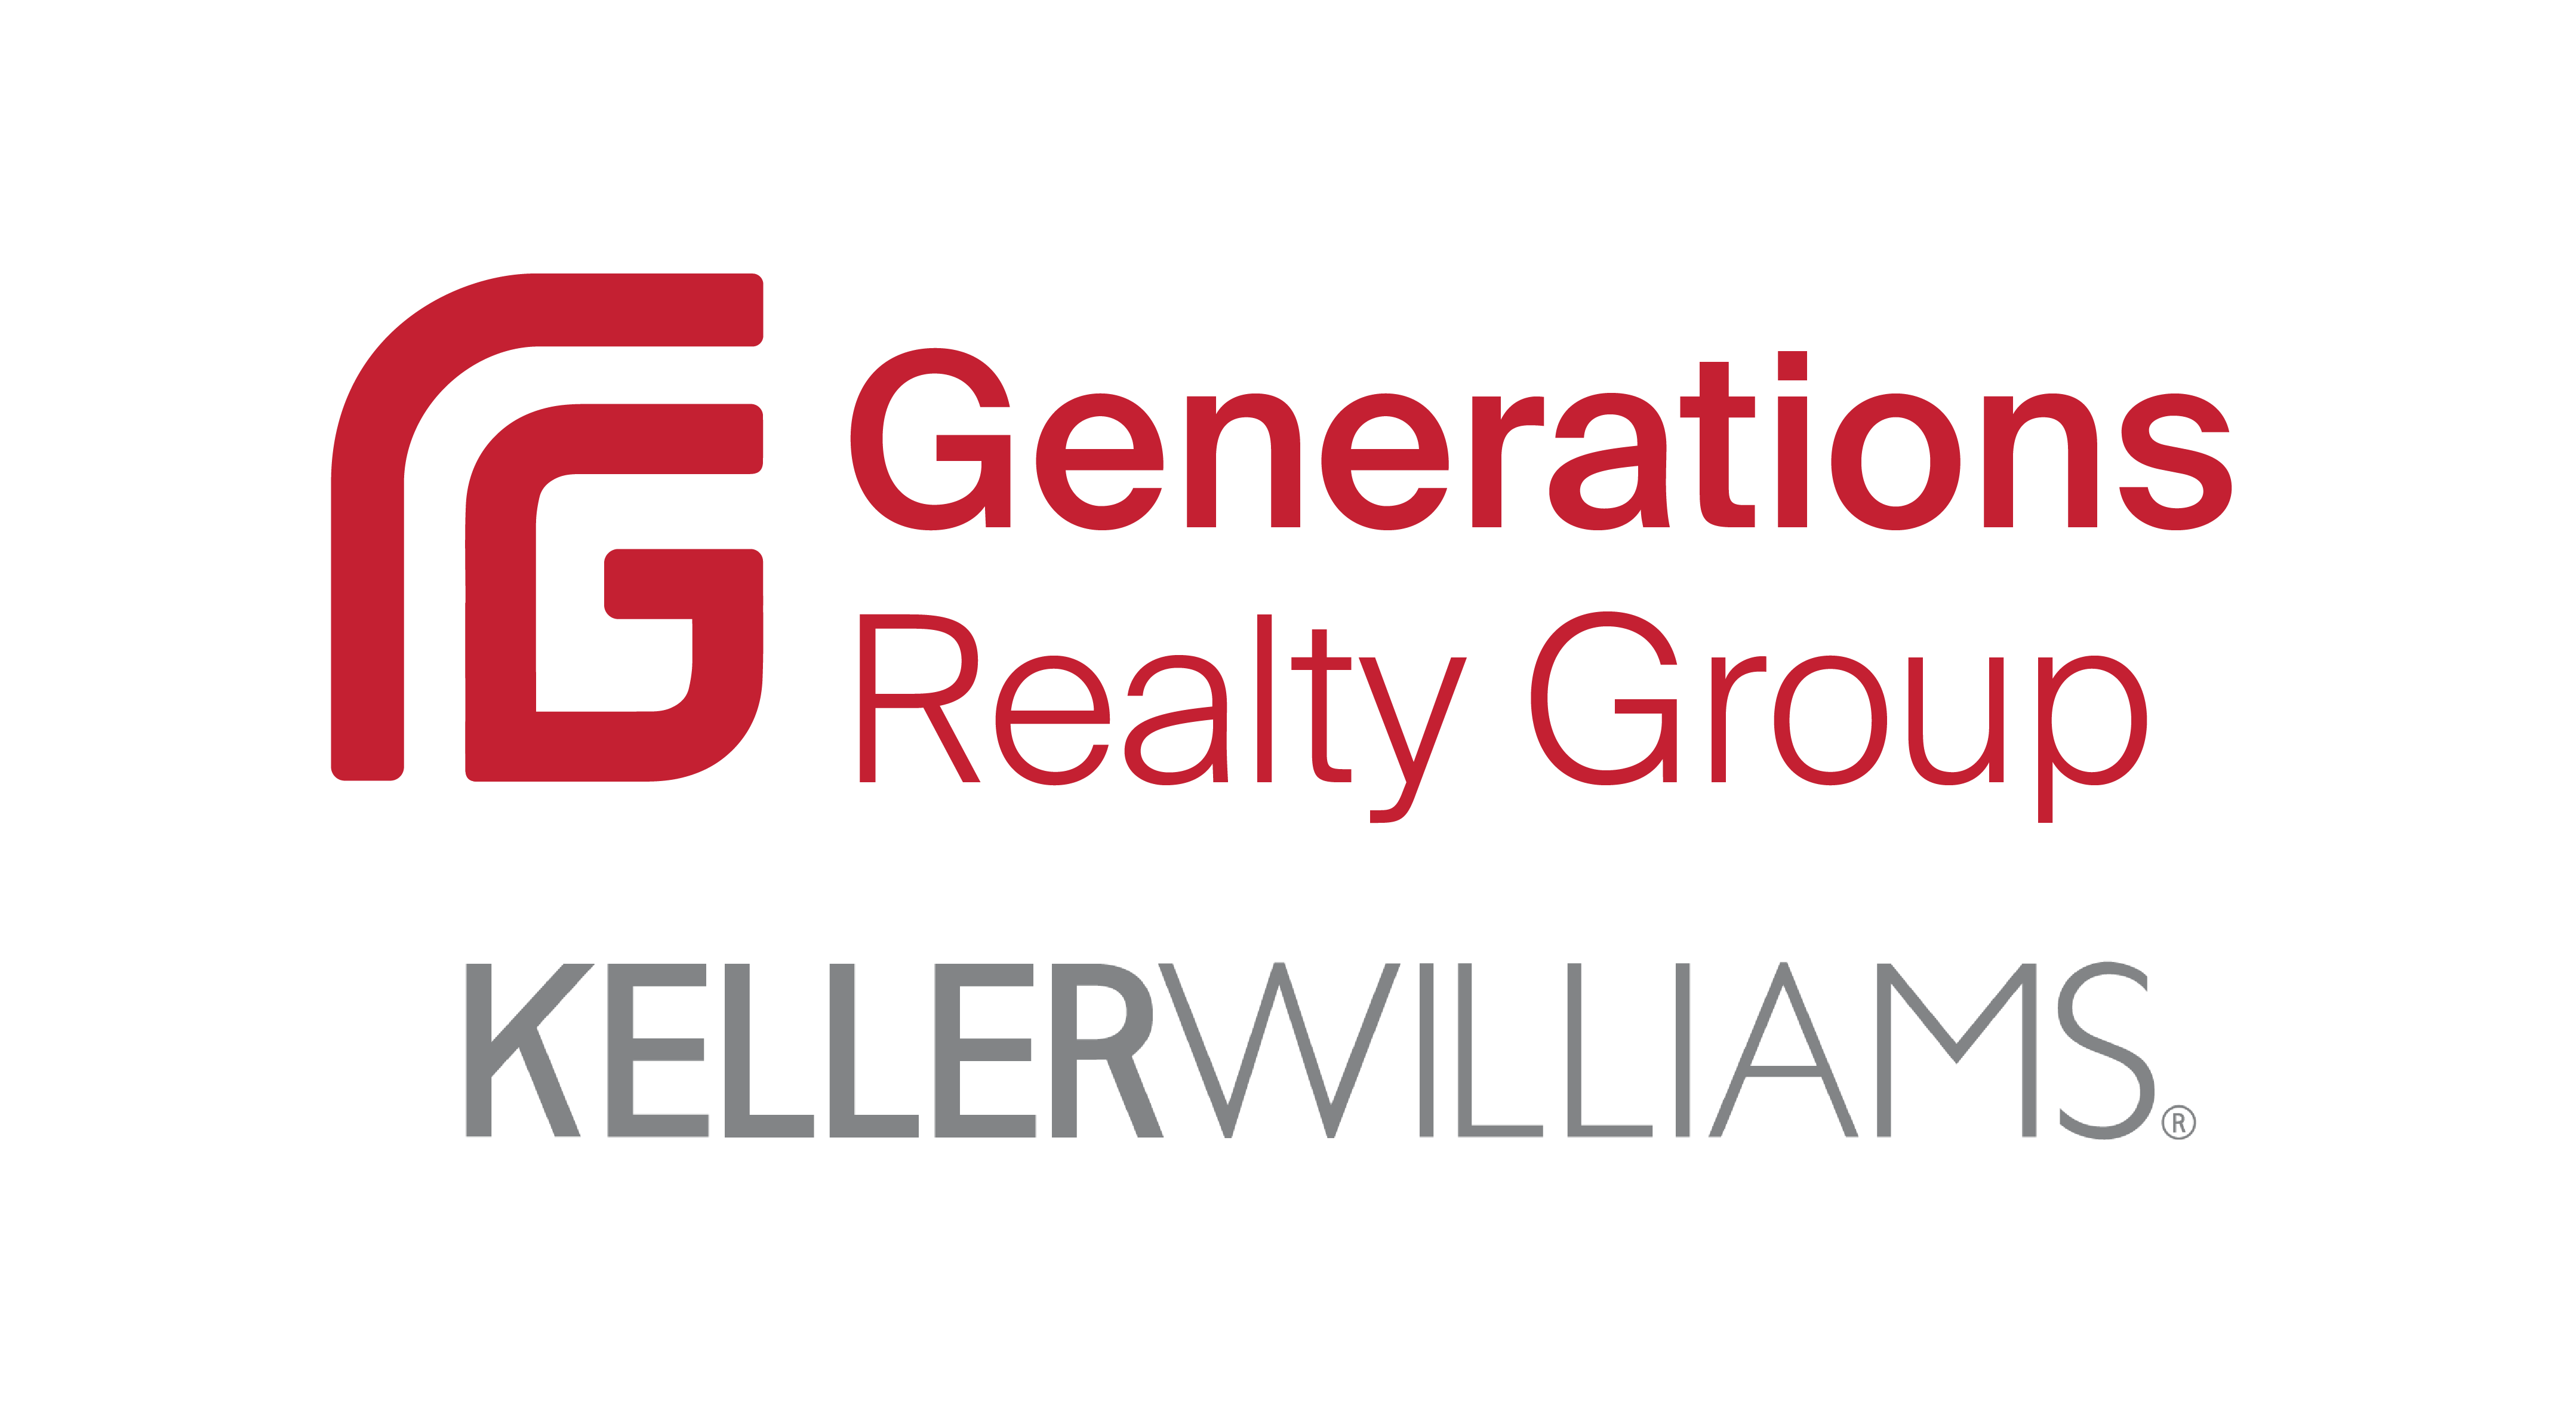 Generations Realty Group